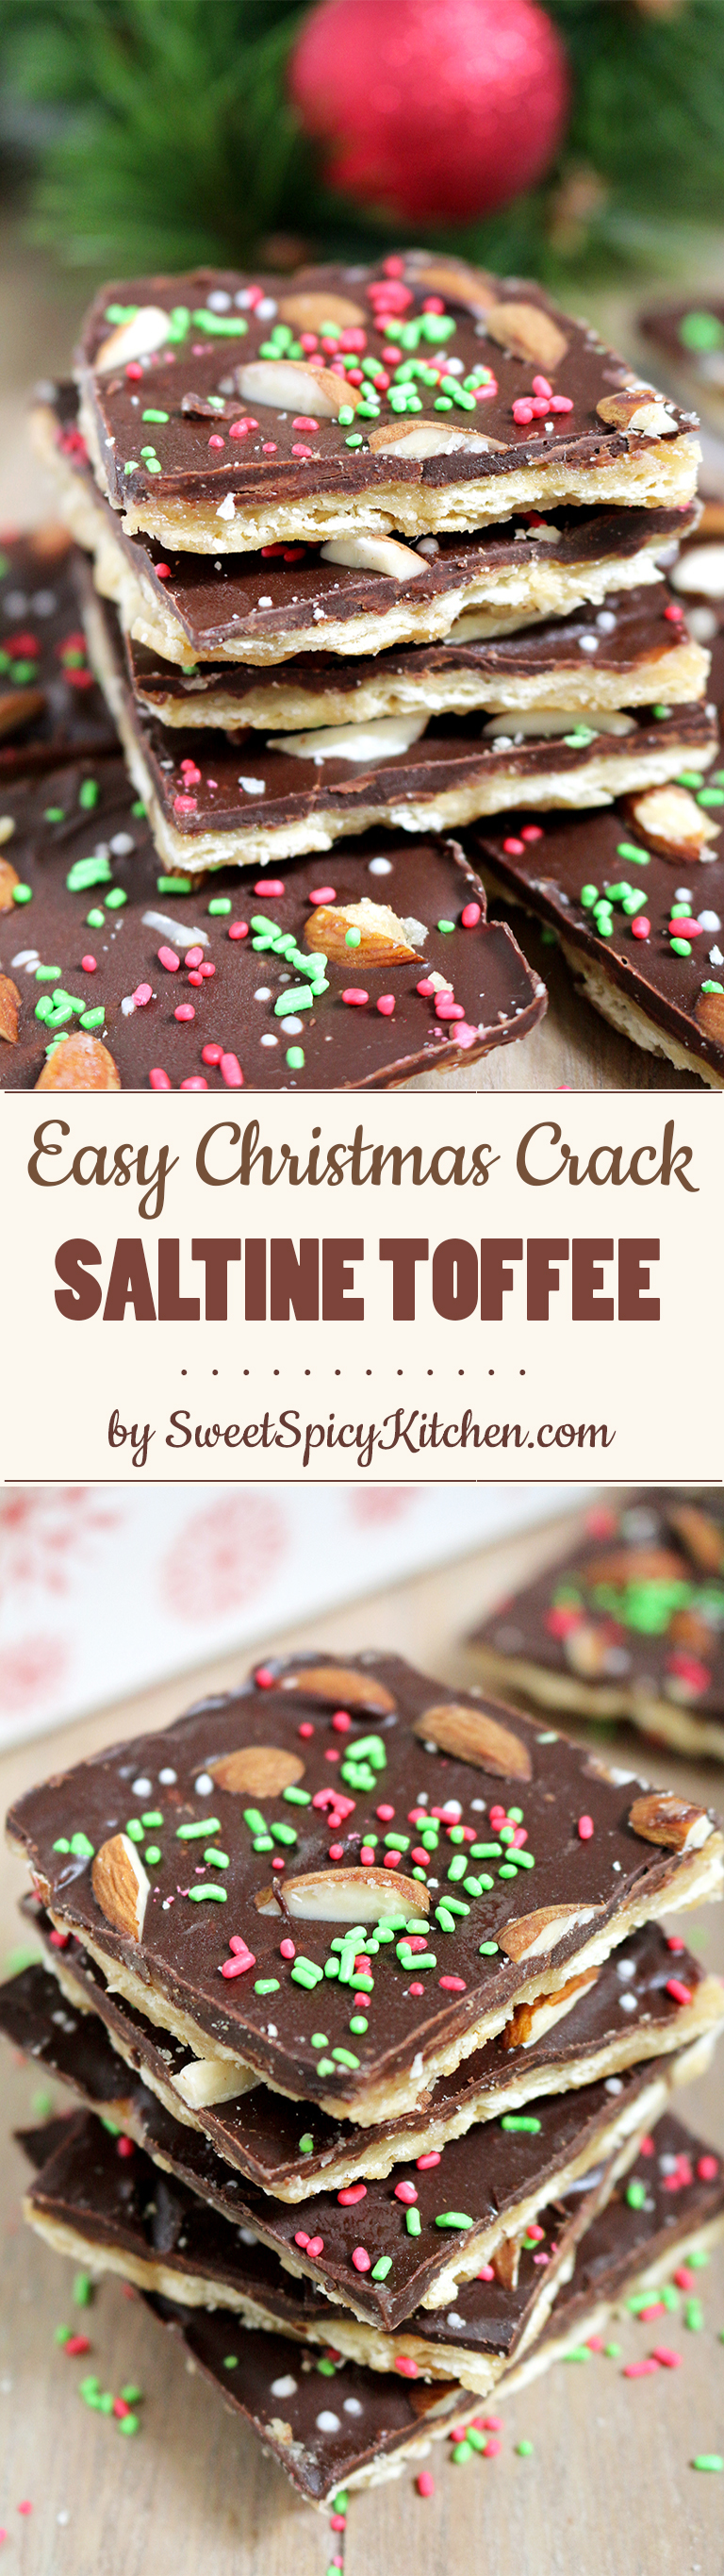 Easy Christmas Crack Saltine Toffee is a perfect crunchy Christmas treat. It's a last minute dessert for all those who don't have enough time for preparing holiday desserts.